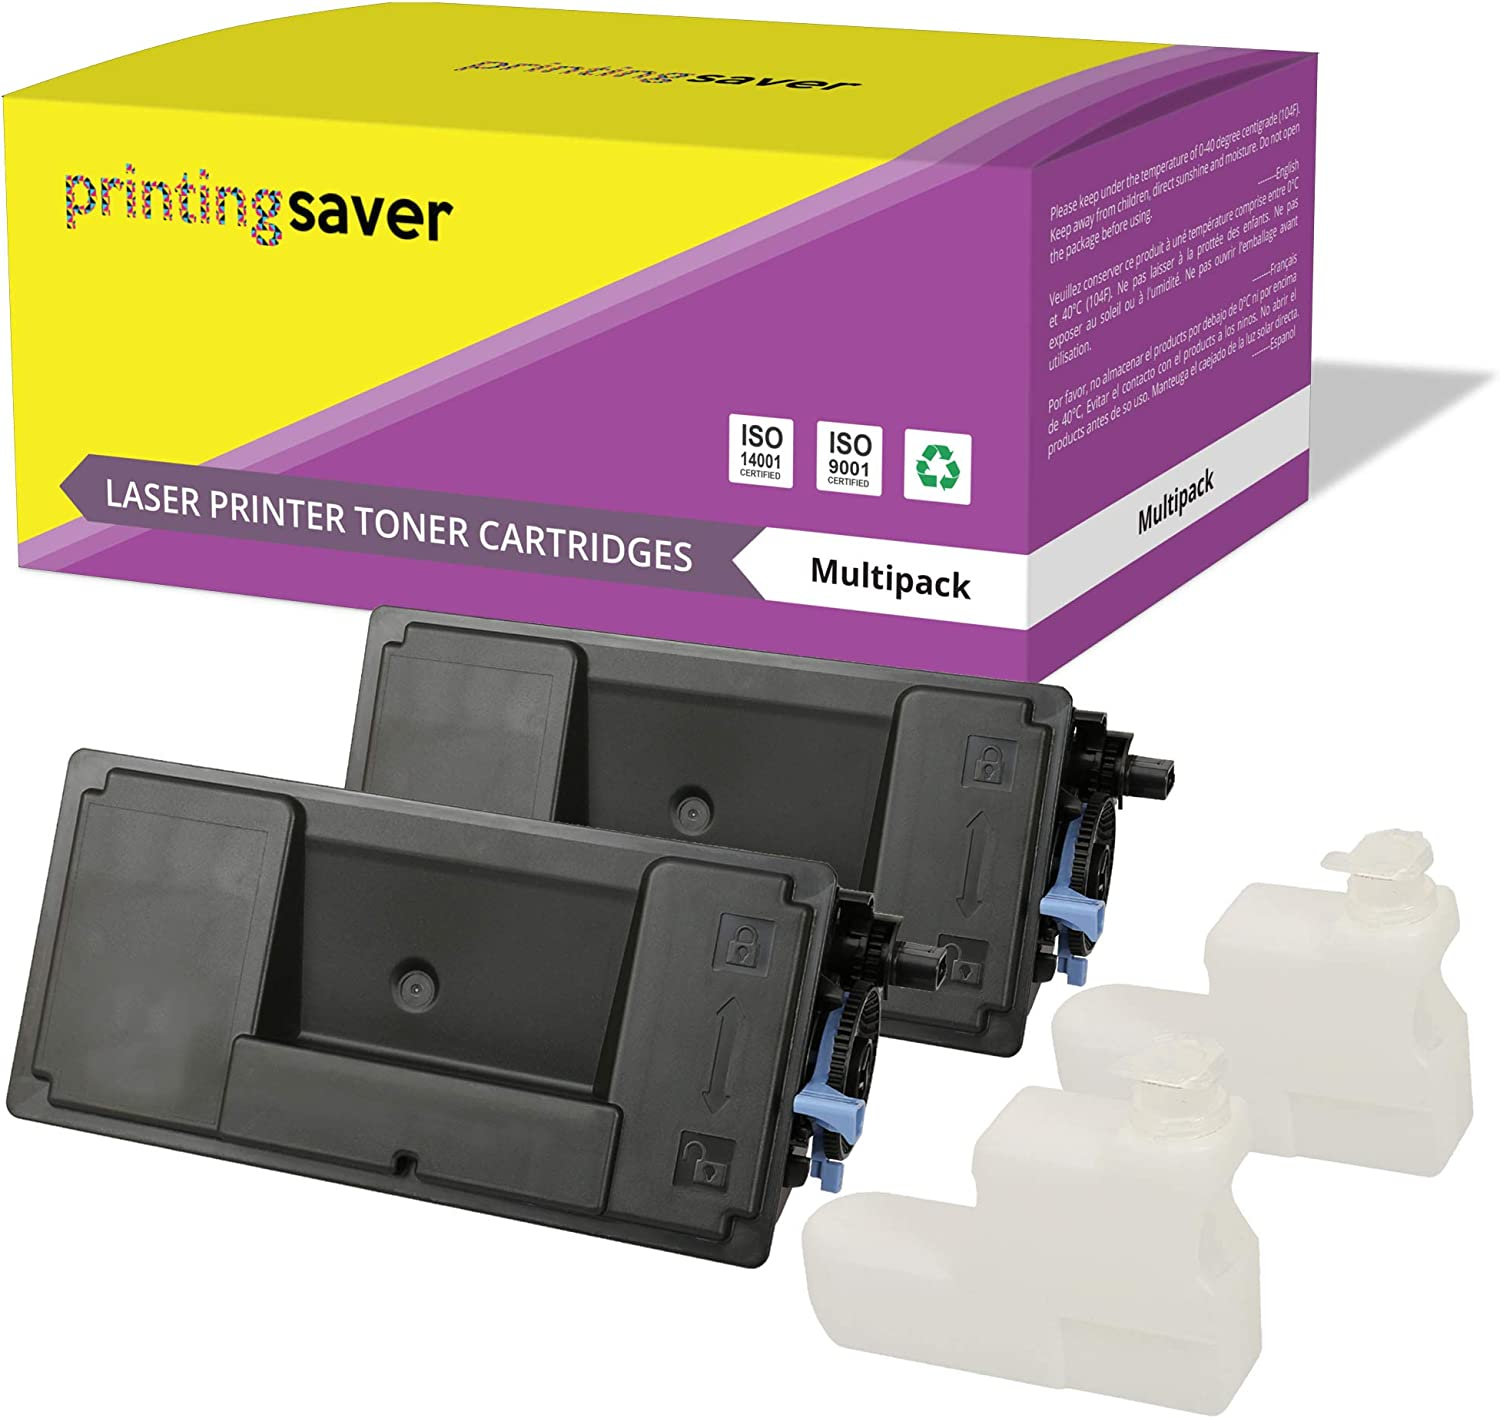 Printing Saver 2X Black Compatible Toners for KYOCERA ECOSYS P3045dn, P3050dn, P3055dn, P3060dn Printers